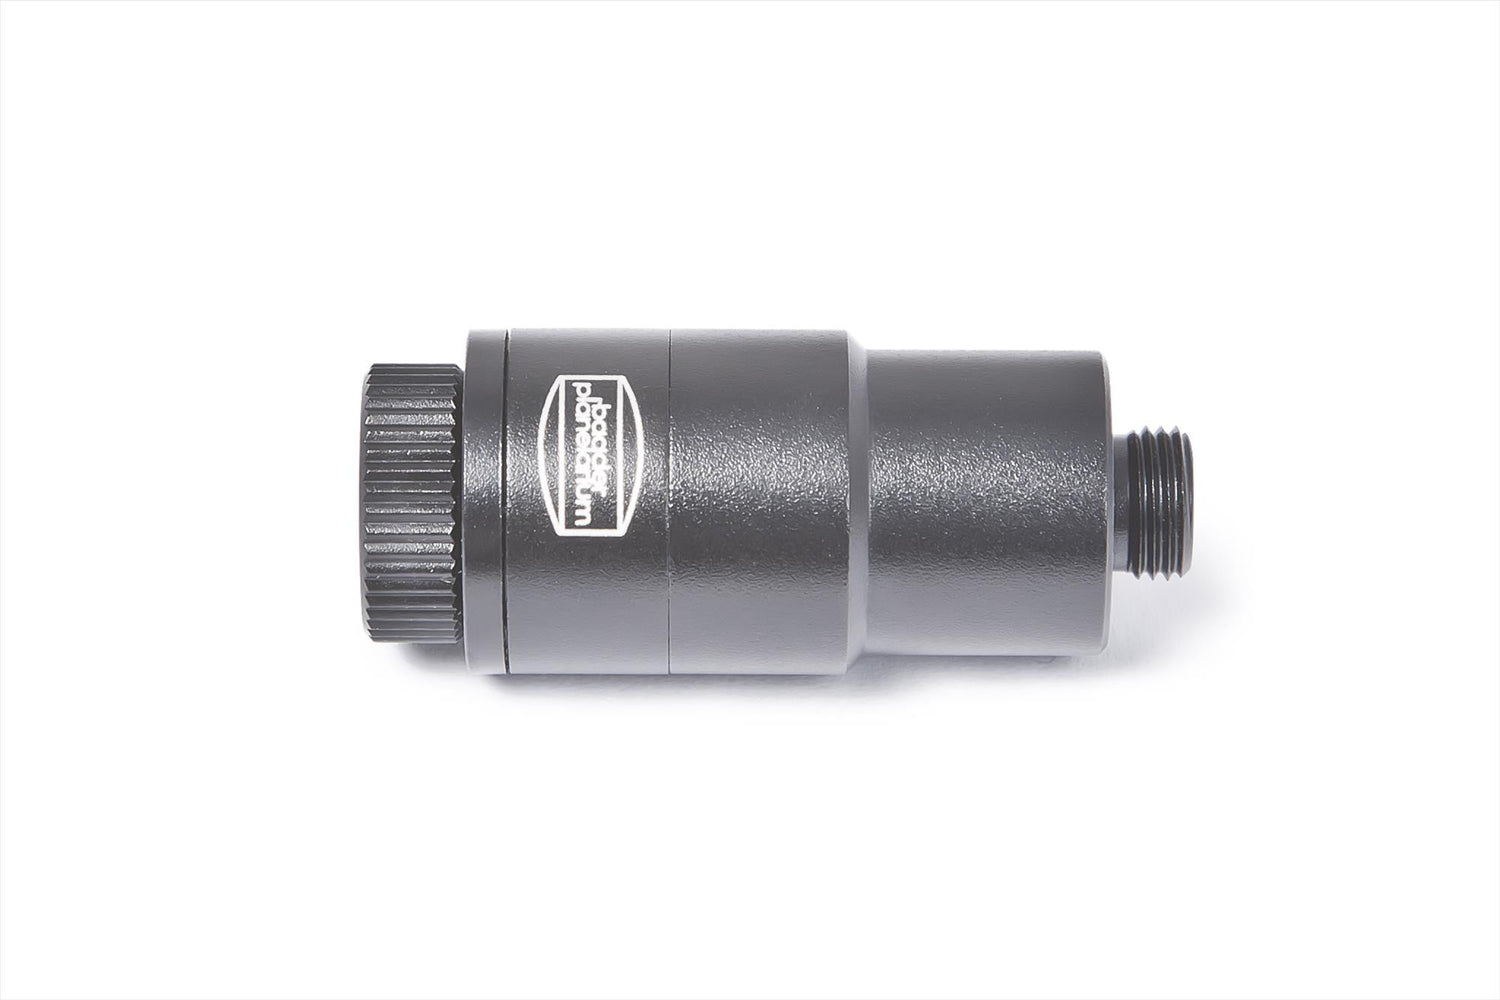 Baader Log-Pot Illuminator for 8x50 and 9x60 finderscopes